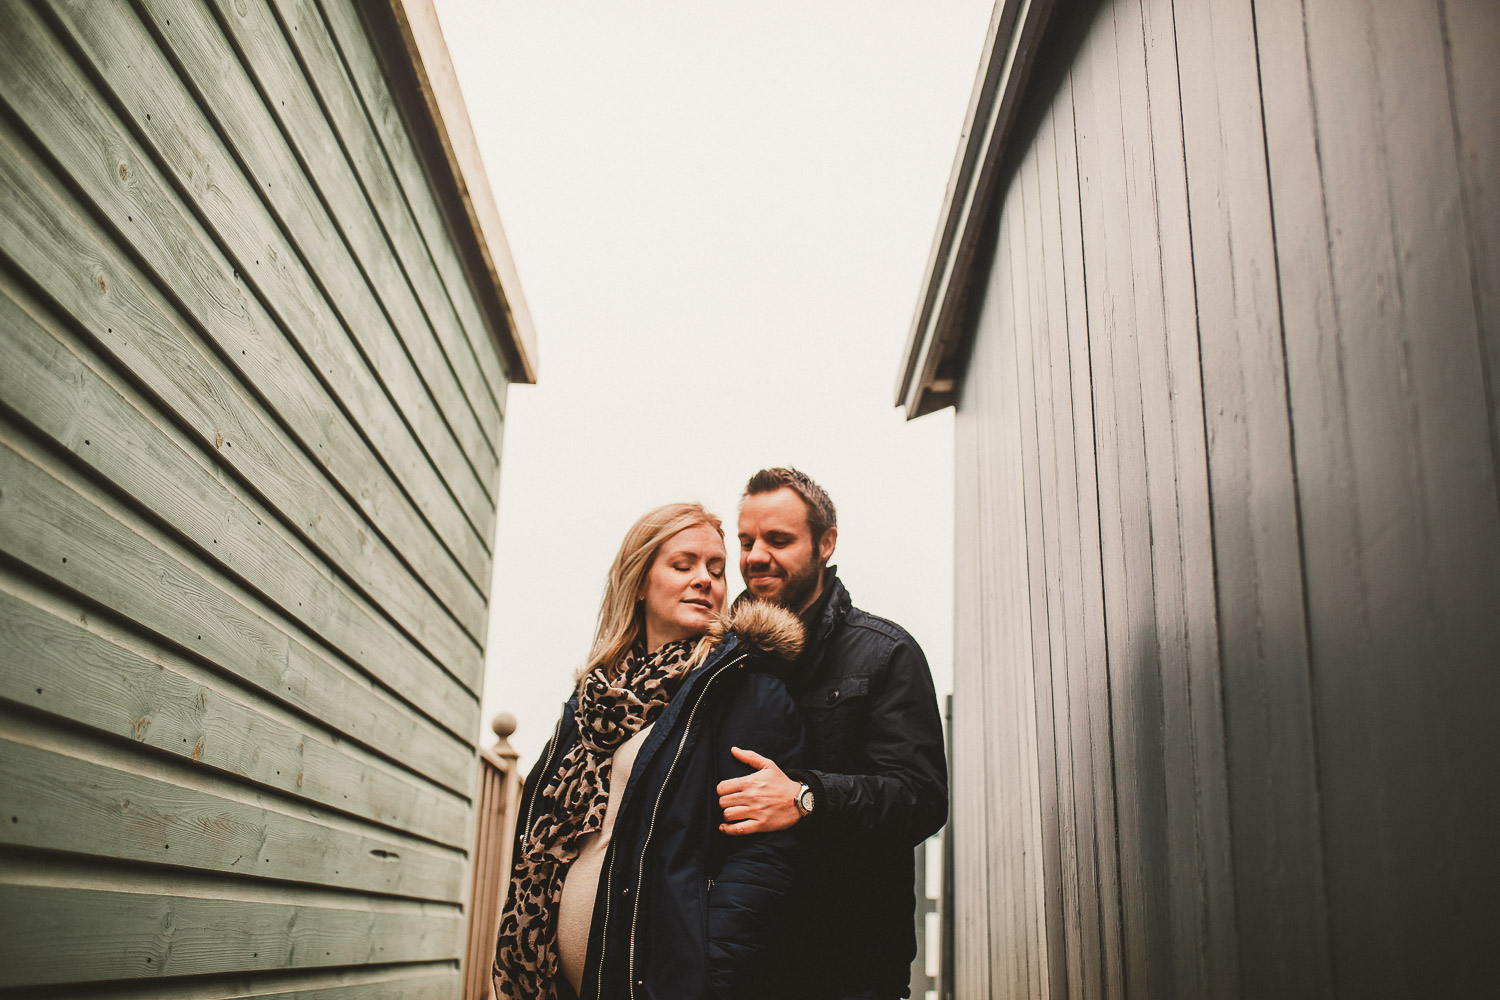 East-Quay-Whistable-Engagement-14.jpg